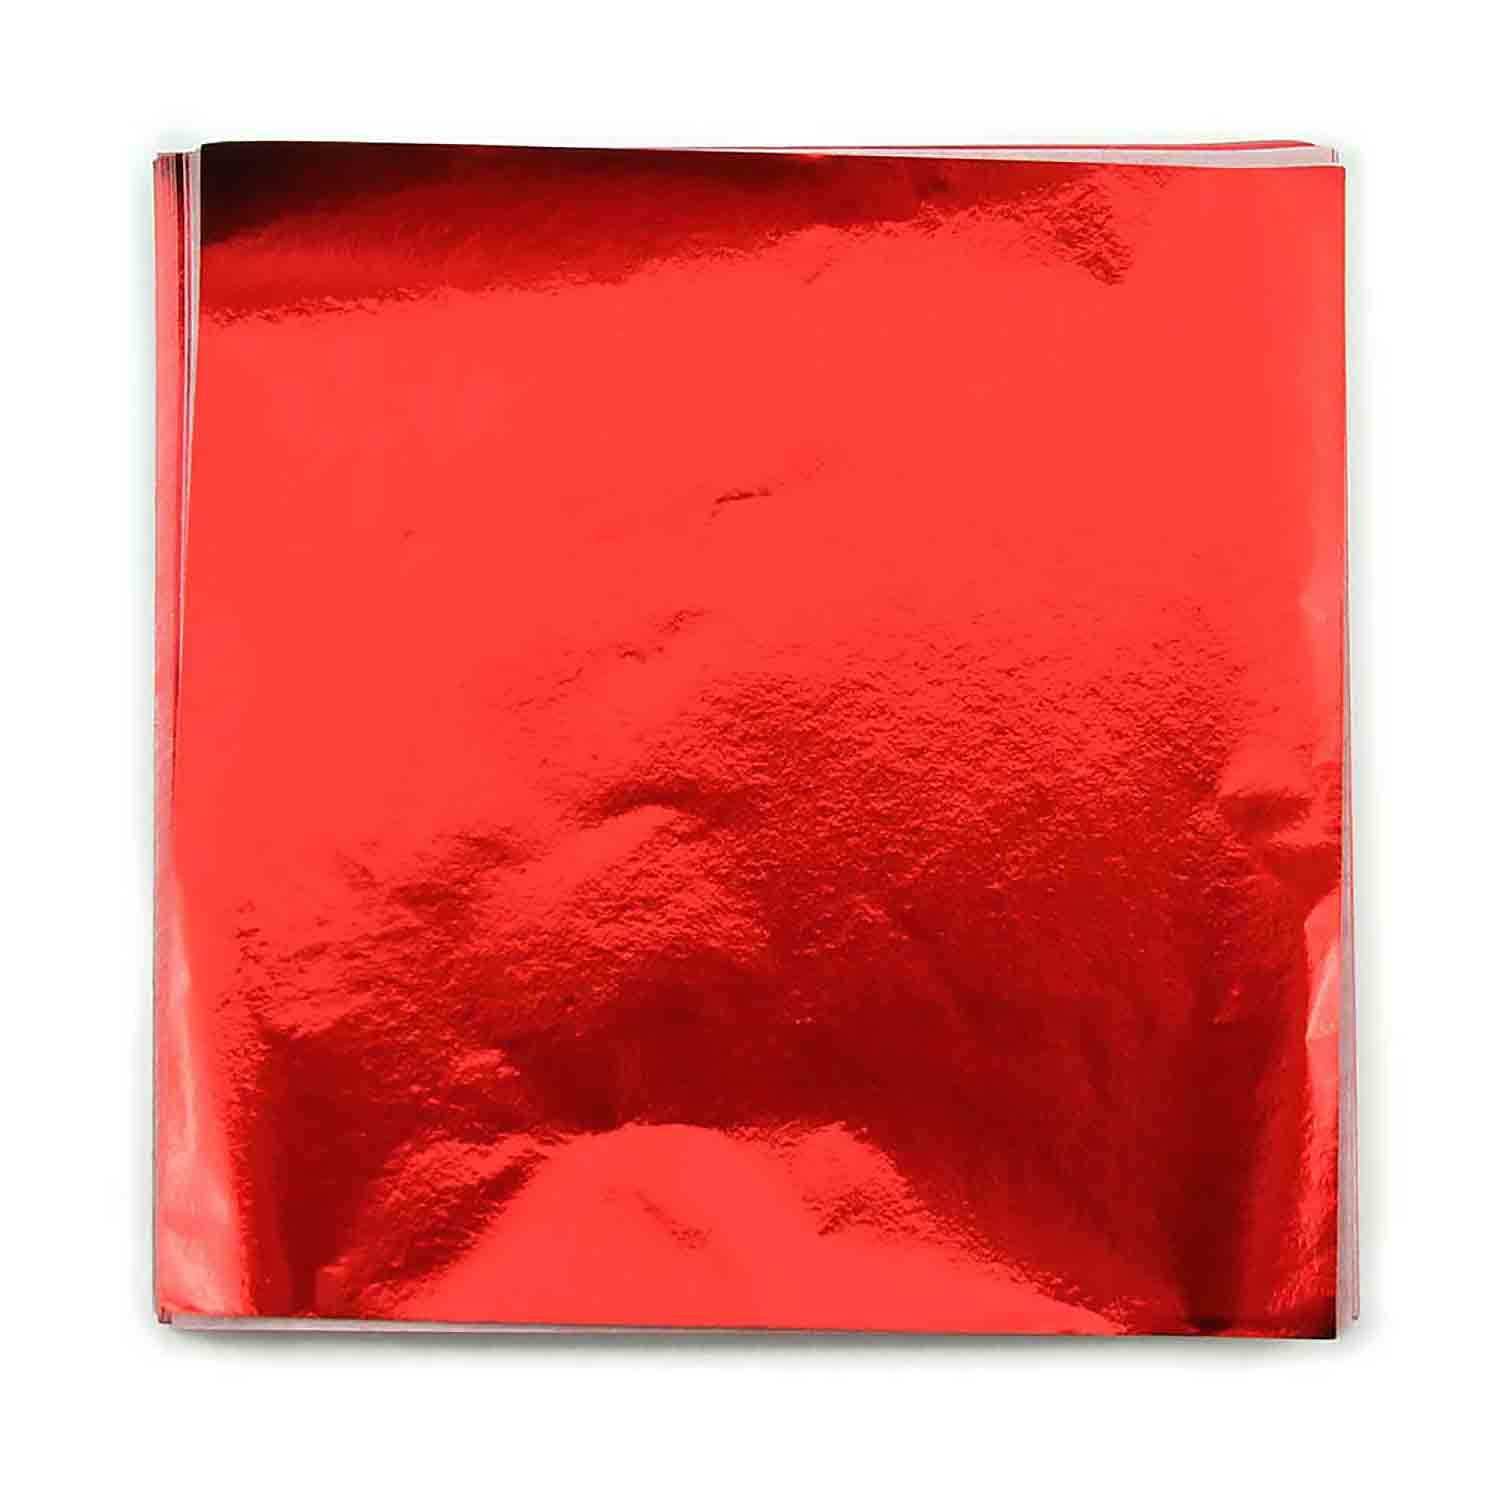 "6 x 6"" Foil Wrapper Red"